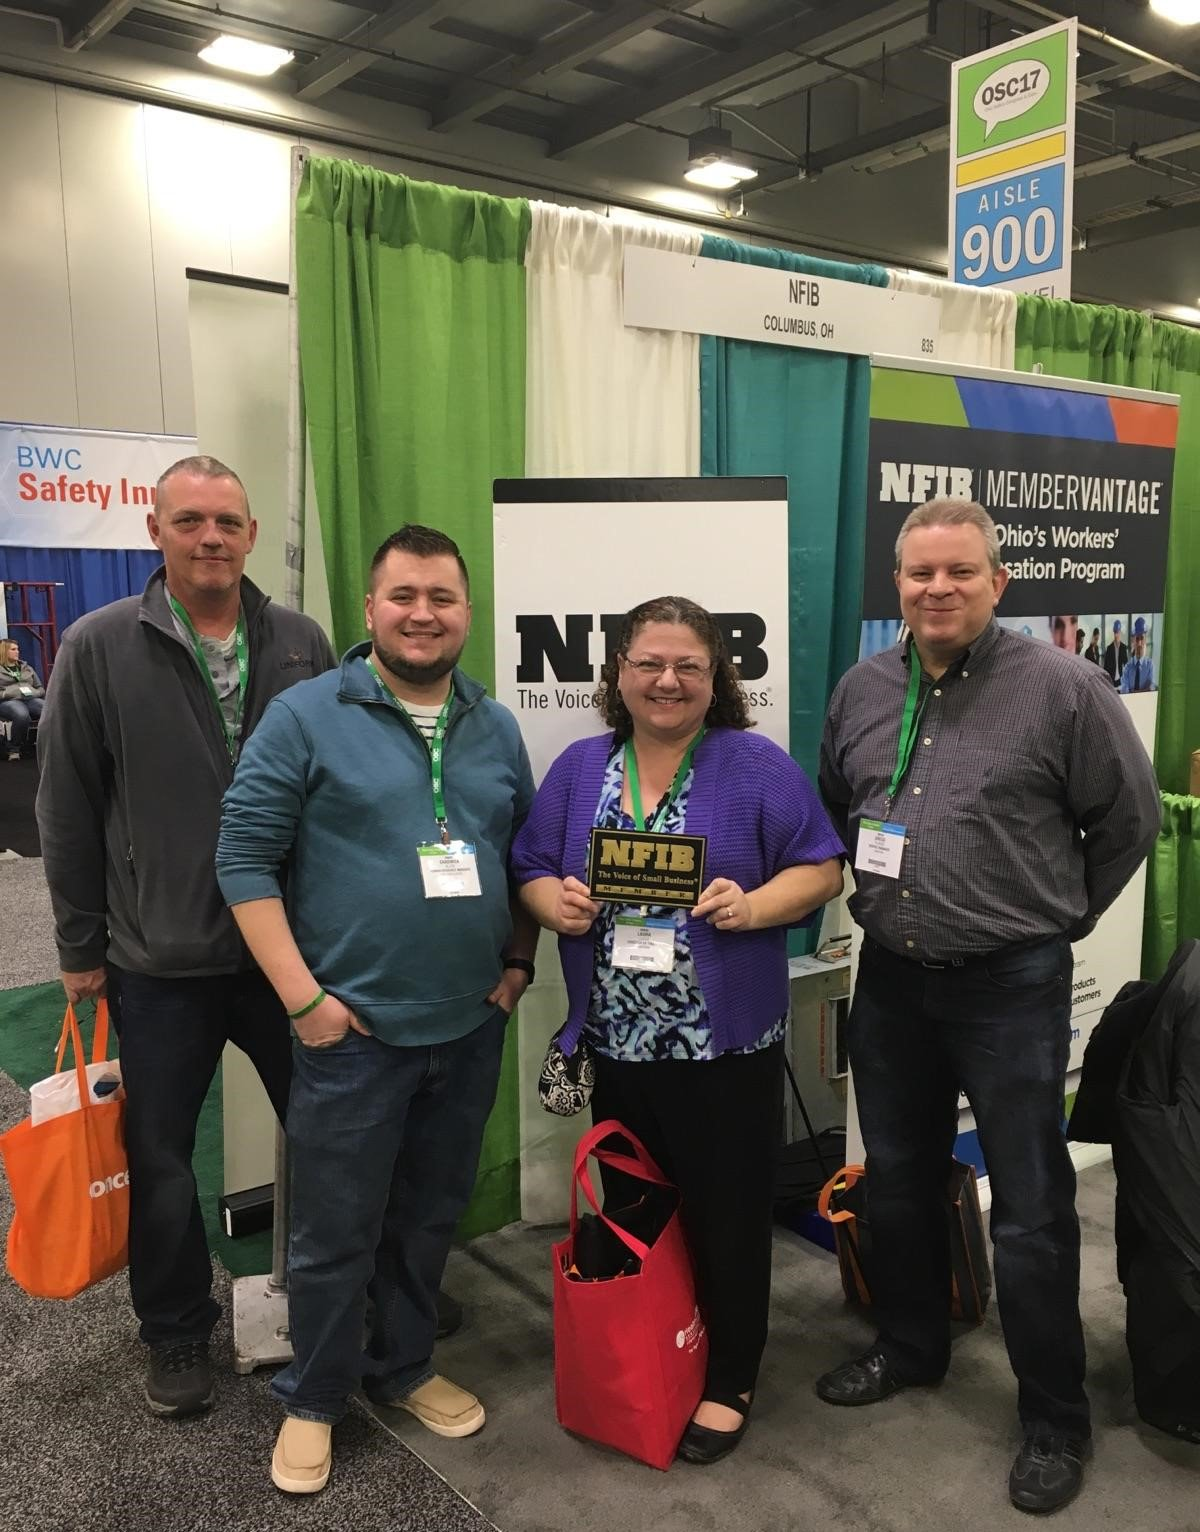 Great @OhioBWC Safety Congress - Liniform Service from Barberton, @NFIB member for 22 years, stopped by our booth. Great to see them! https://t.co/6ebQgCvGay